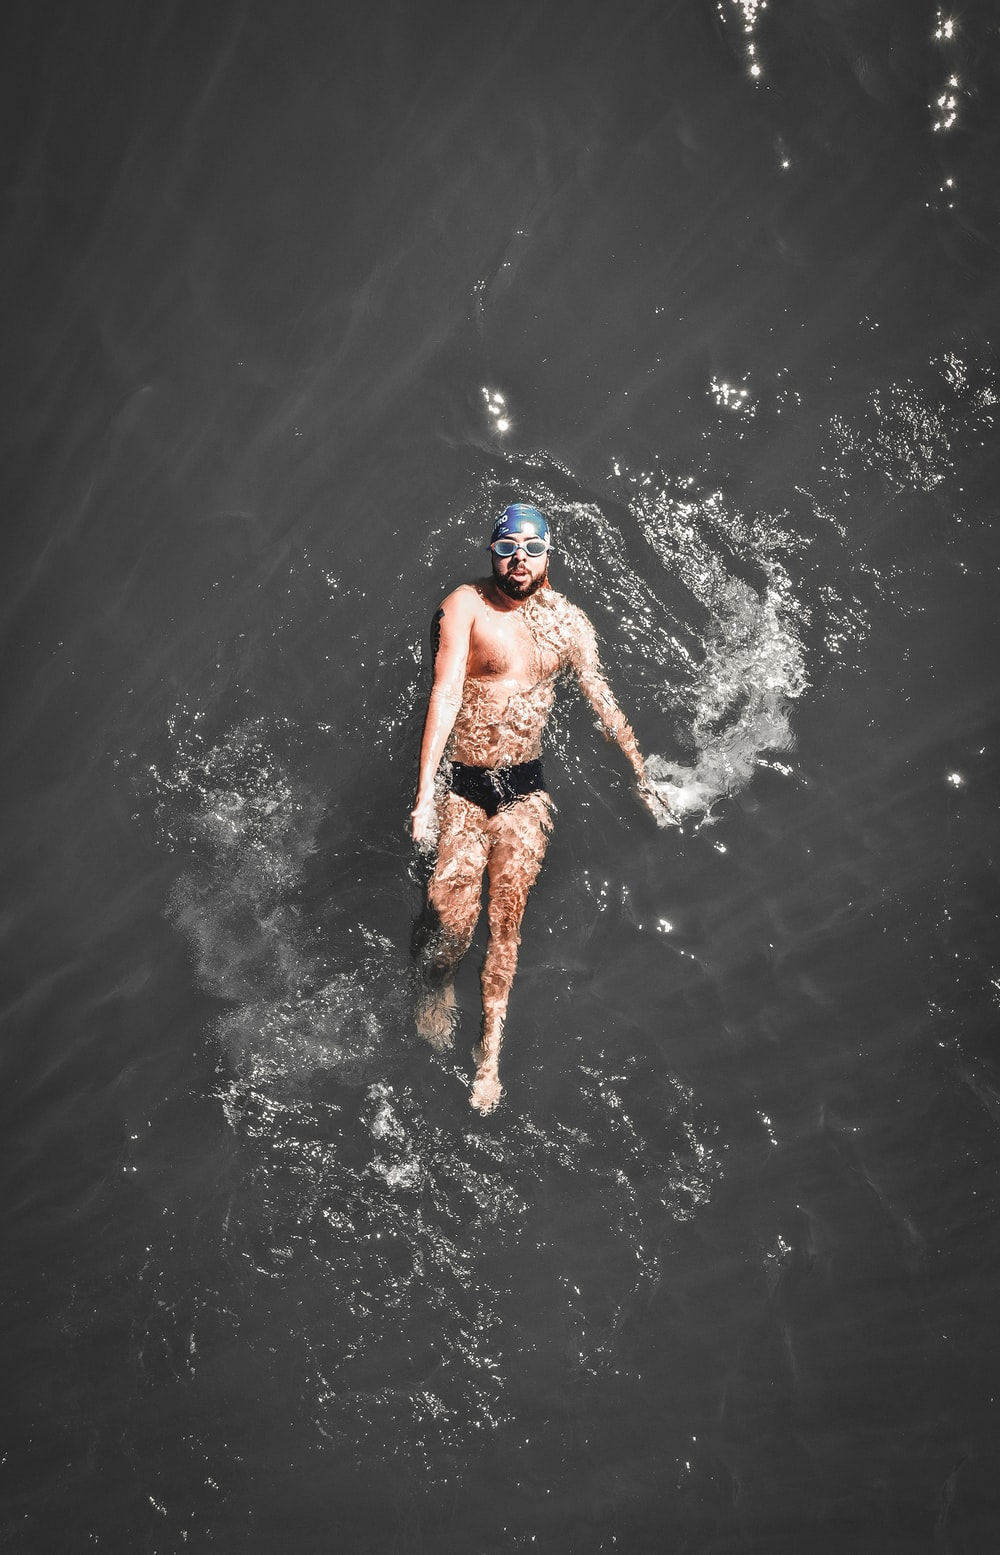 aerial photography of man swimming on water